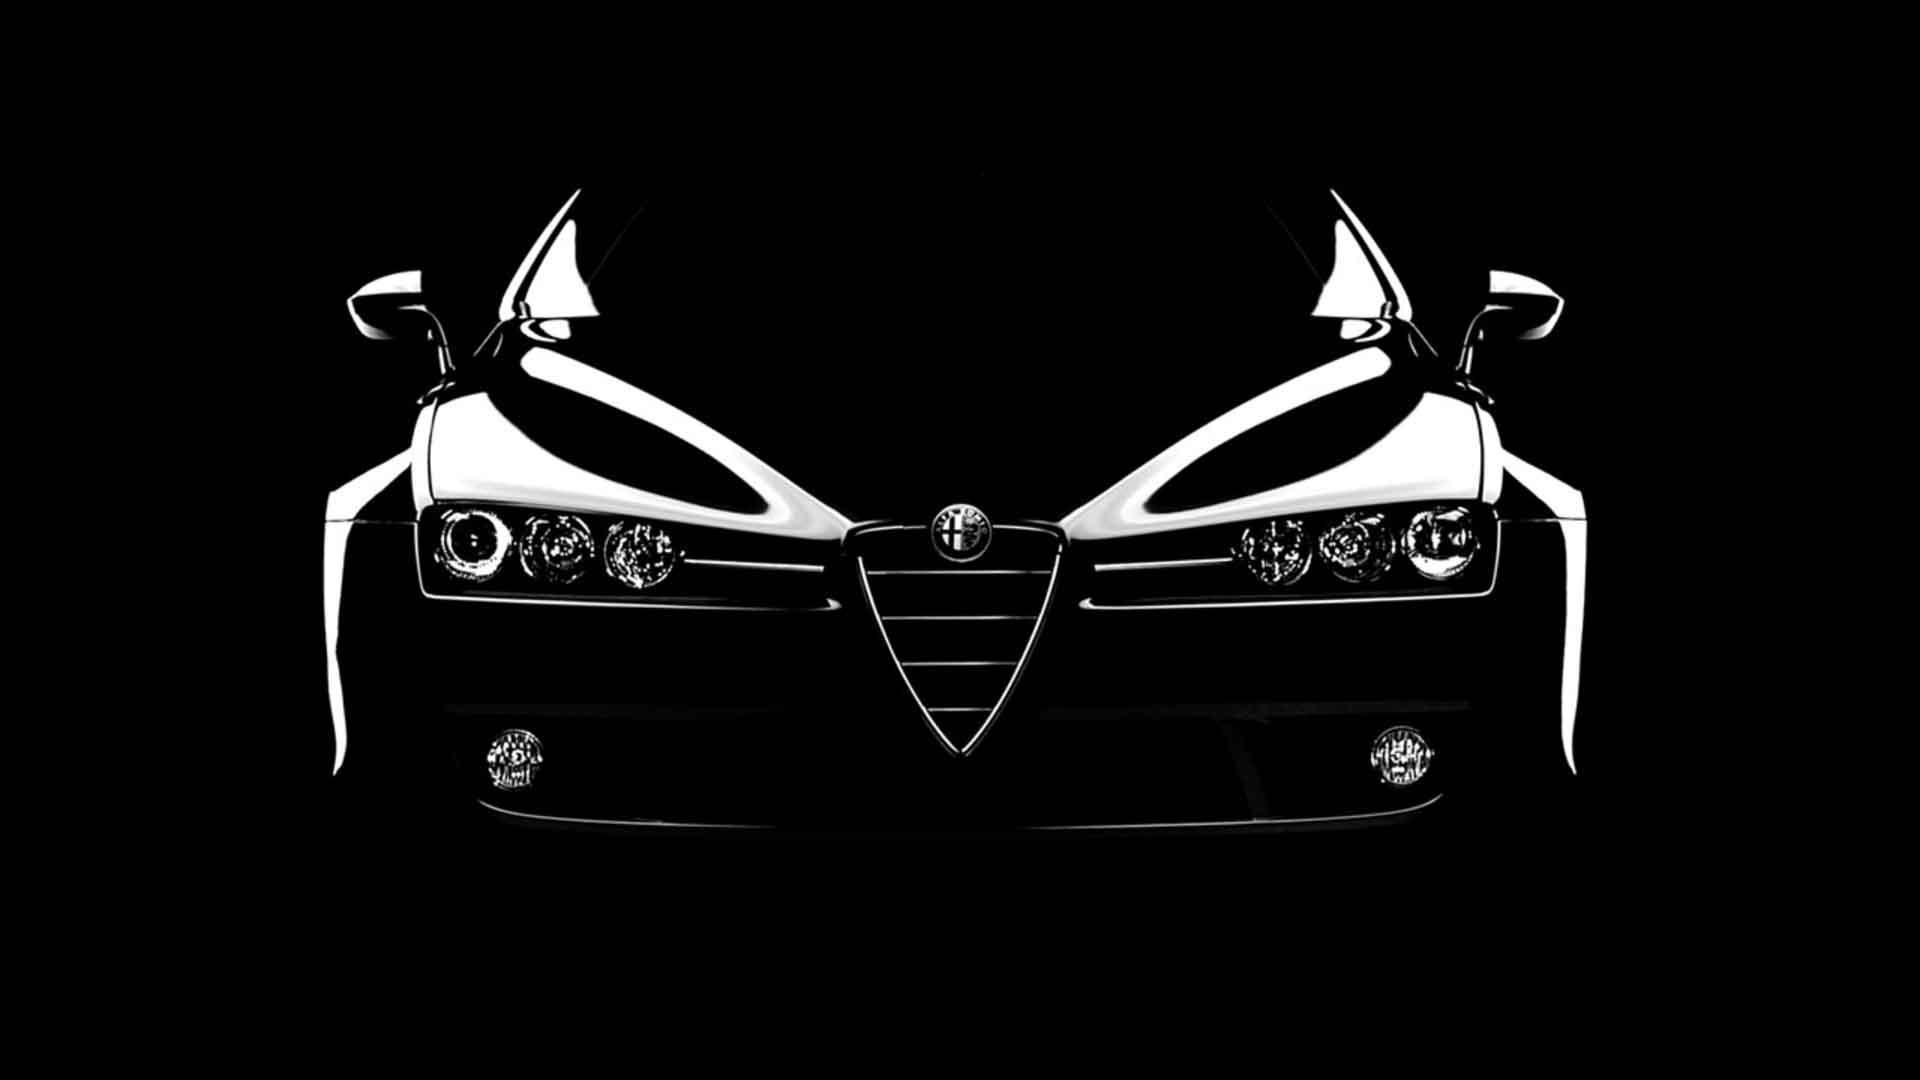 Alfa Romeo Wallpapers and Background Images   stmednet 1920x1080